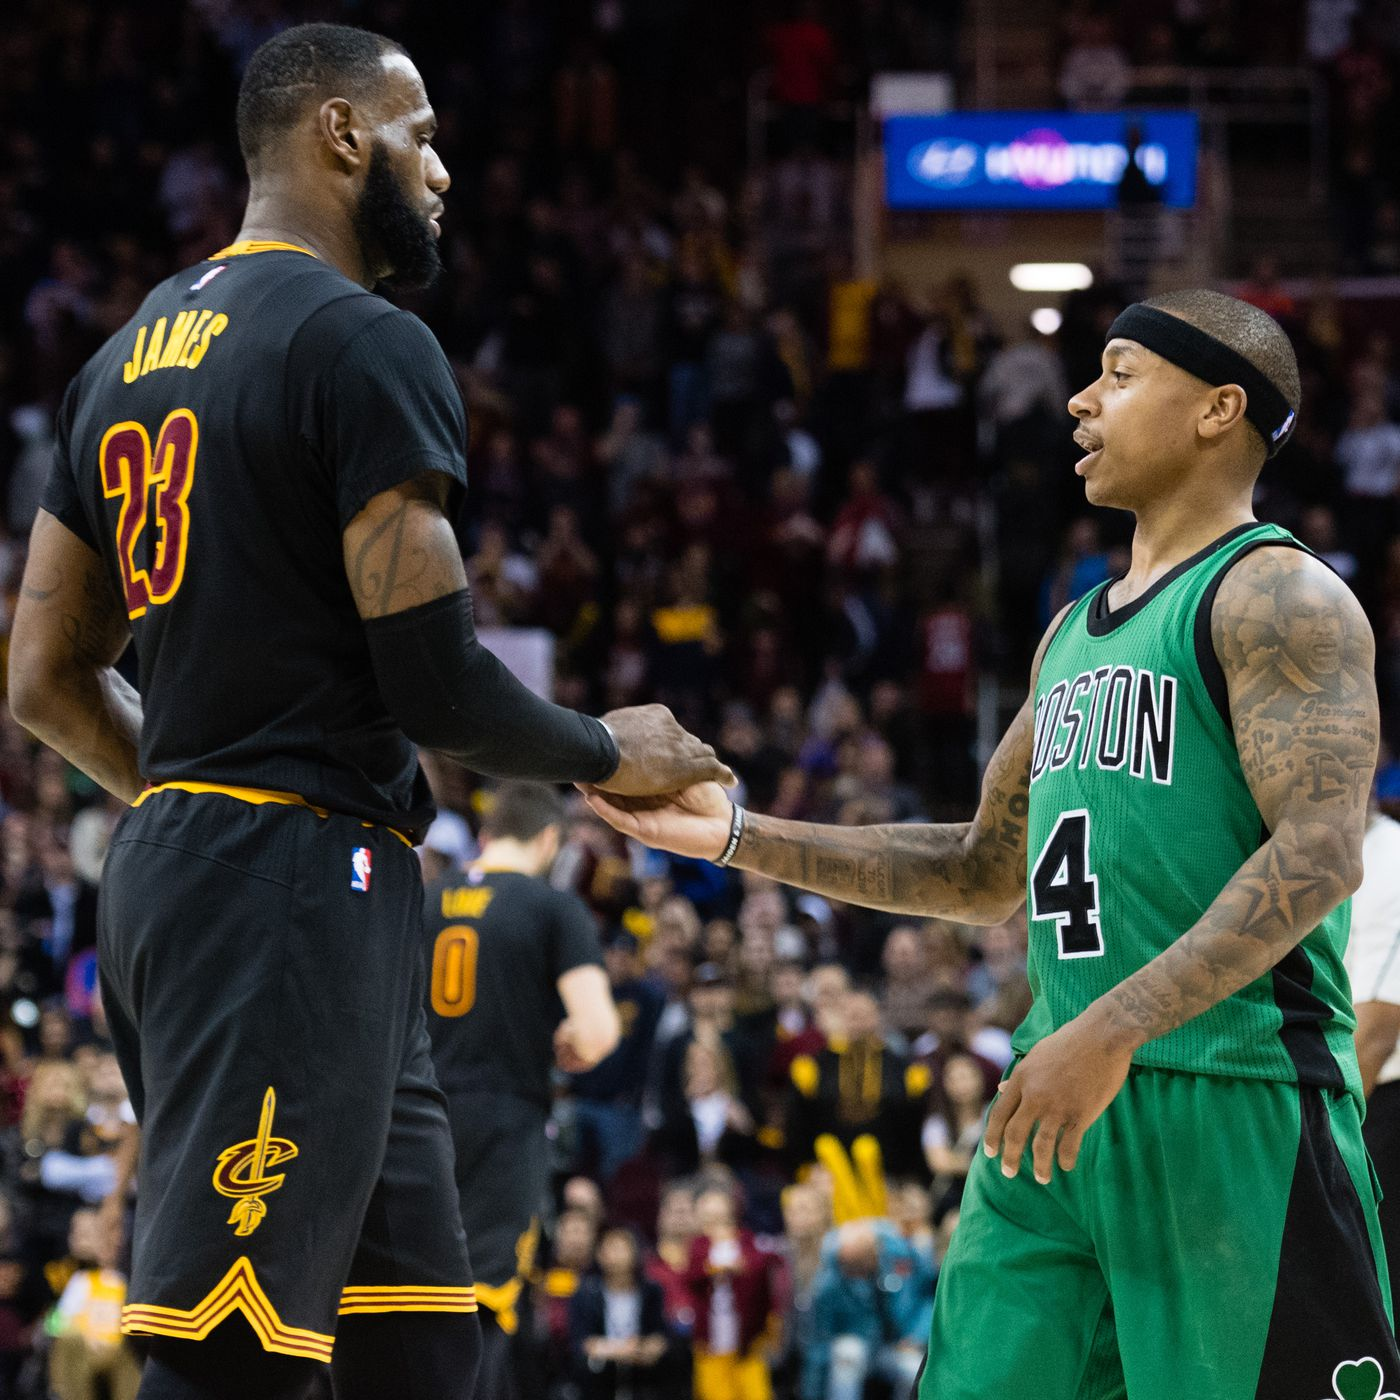 d8006befe665 How the Kyrie Irving trade could go wrong for the Cavaliers and Celtics